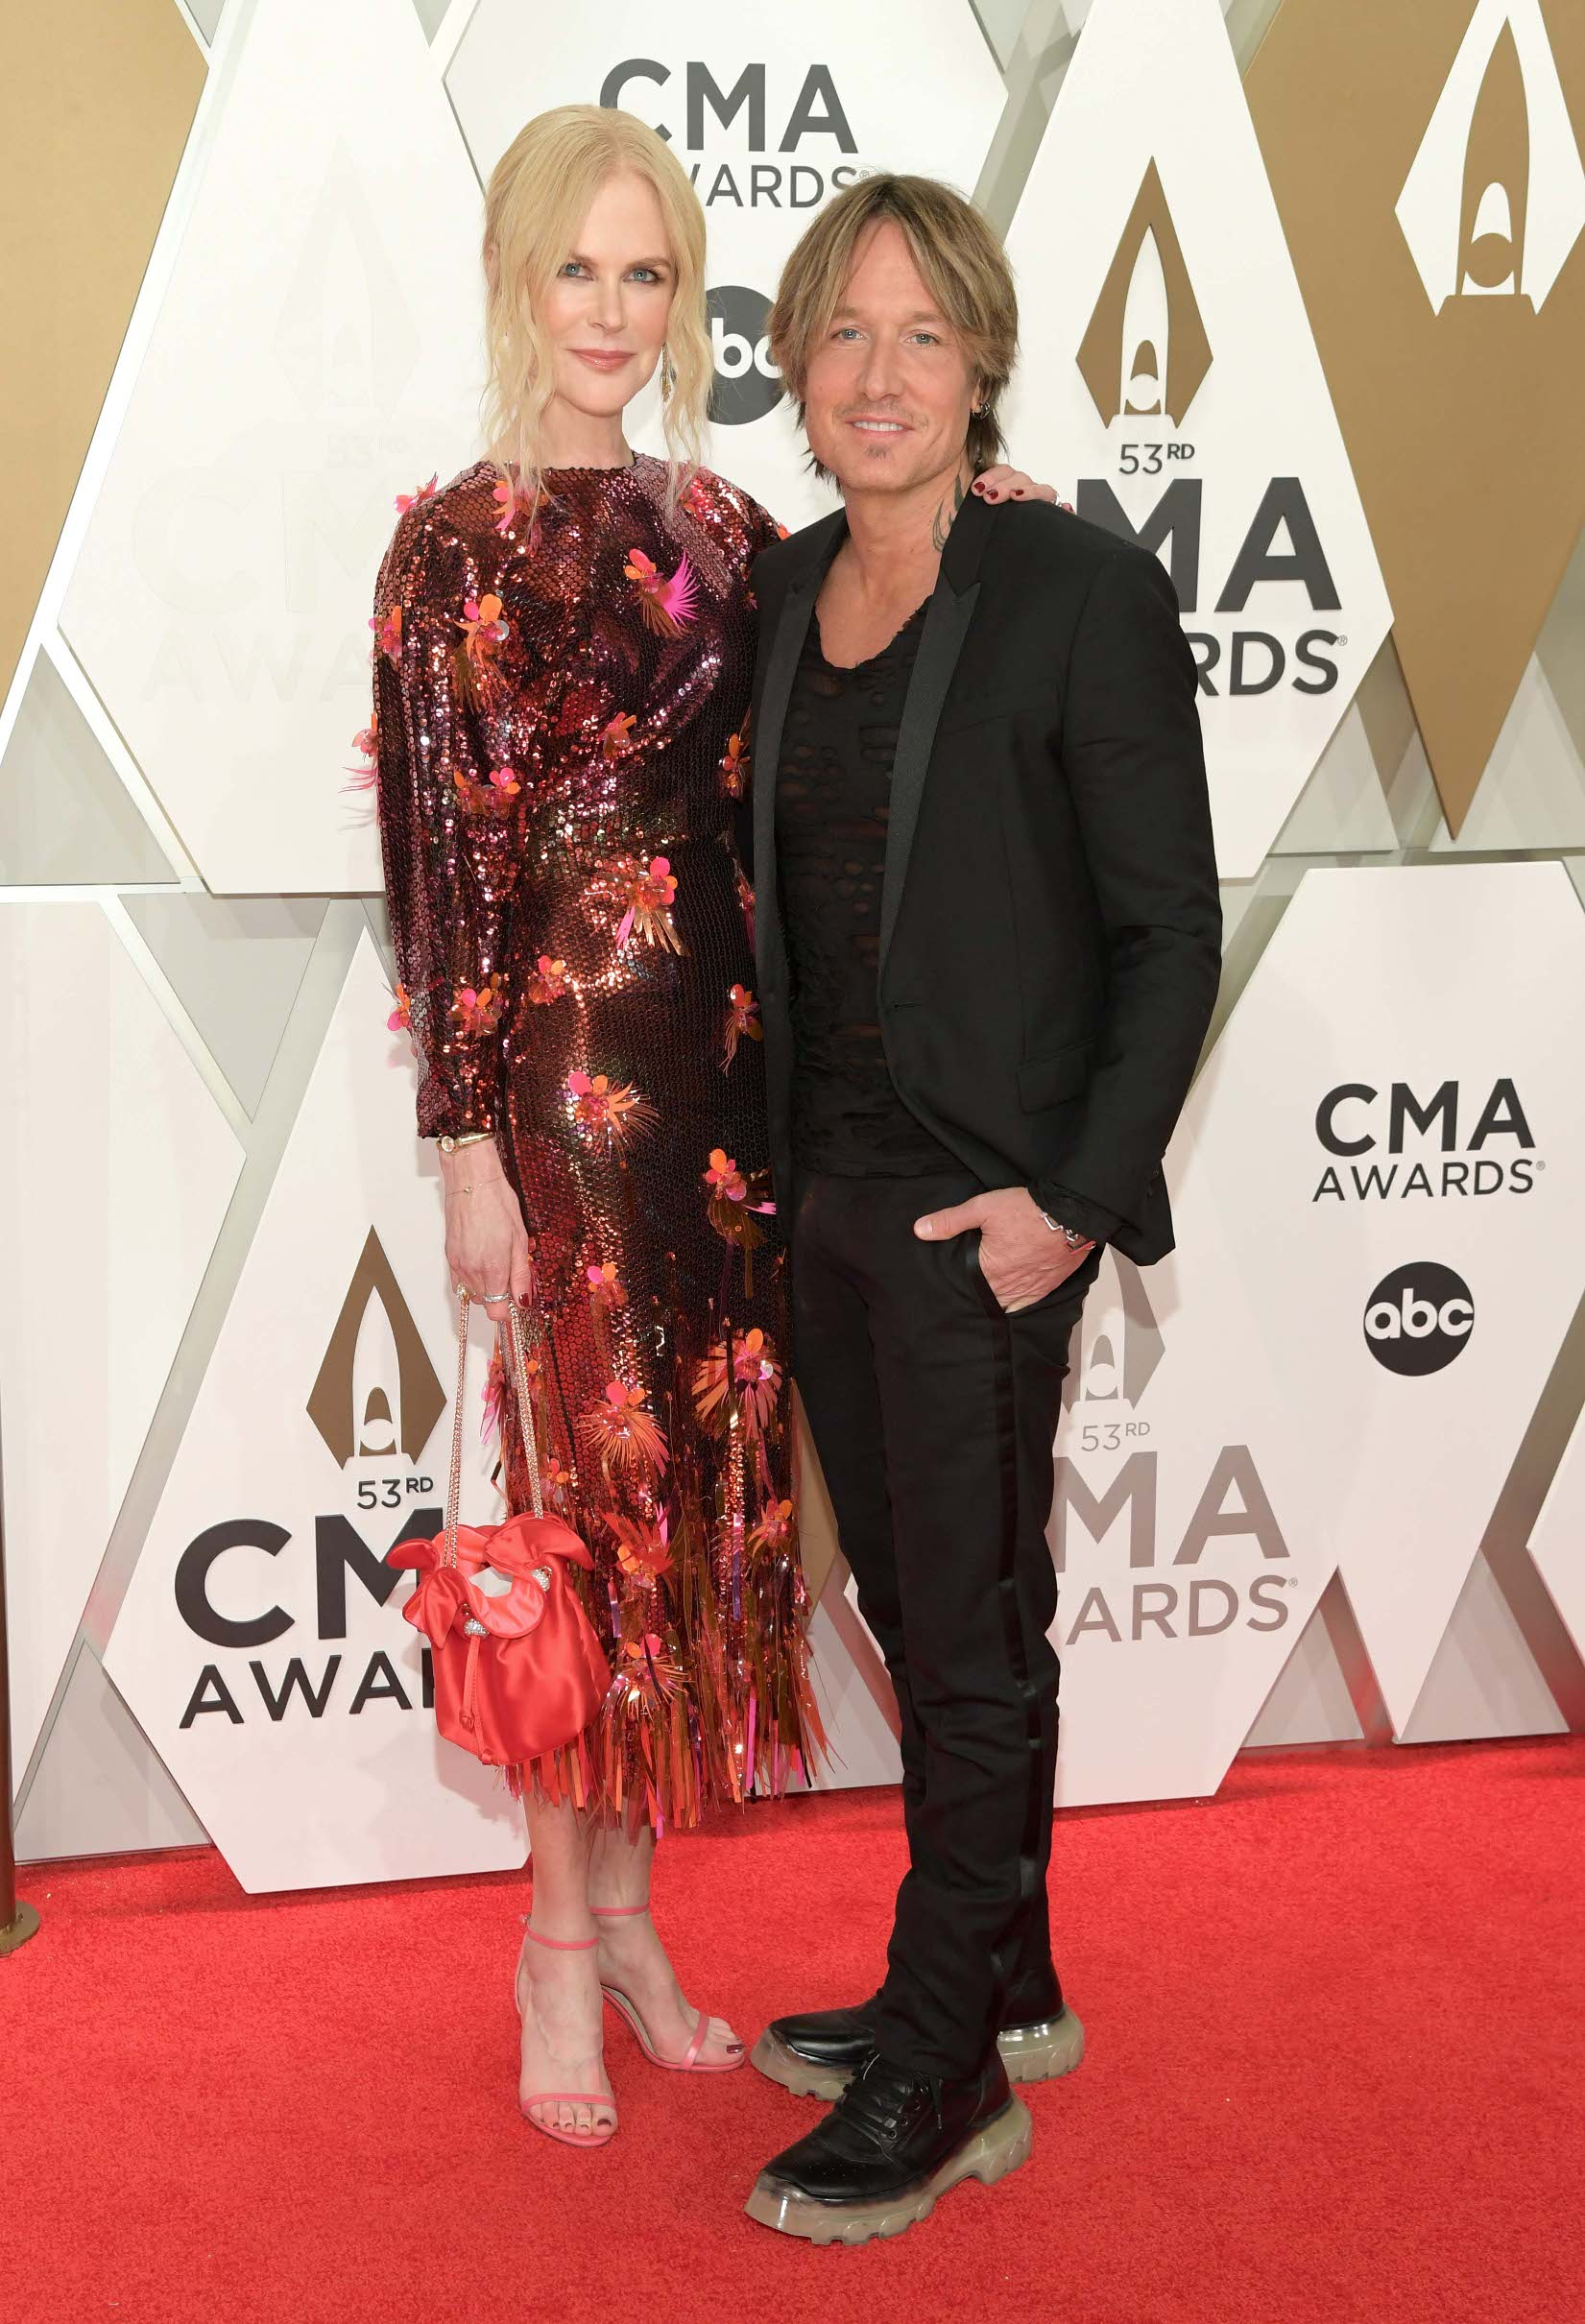 NASHVILLE, TENNESSEE - NOVEMBER 13: (FOR EDITORIAL USE ONLY) Nicole Kidman and Keith Urban attend the 53rd annual CMA Awards at the Music City Center on November 13, 2019 in Nashville, Tennessee. (Photo by Jason Kempin/Getty Images)